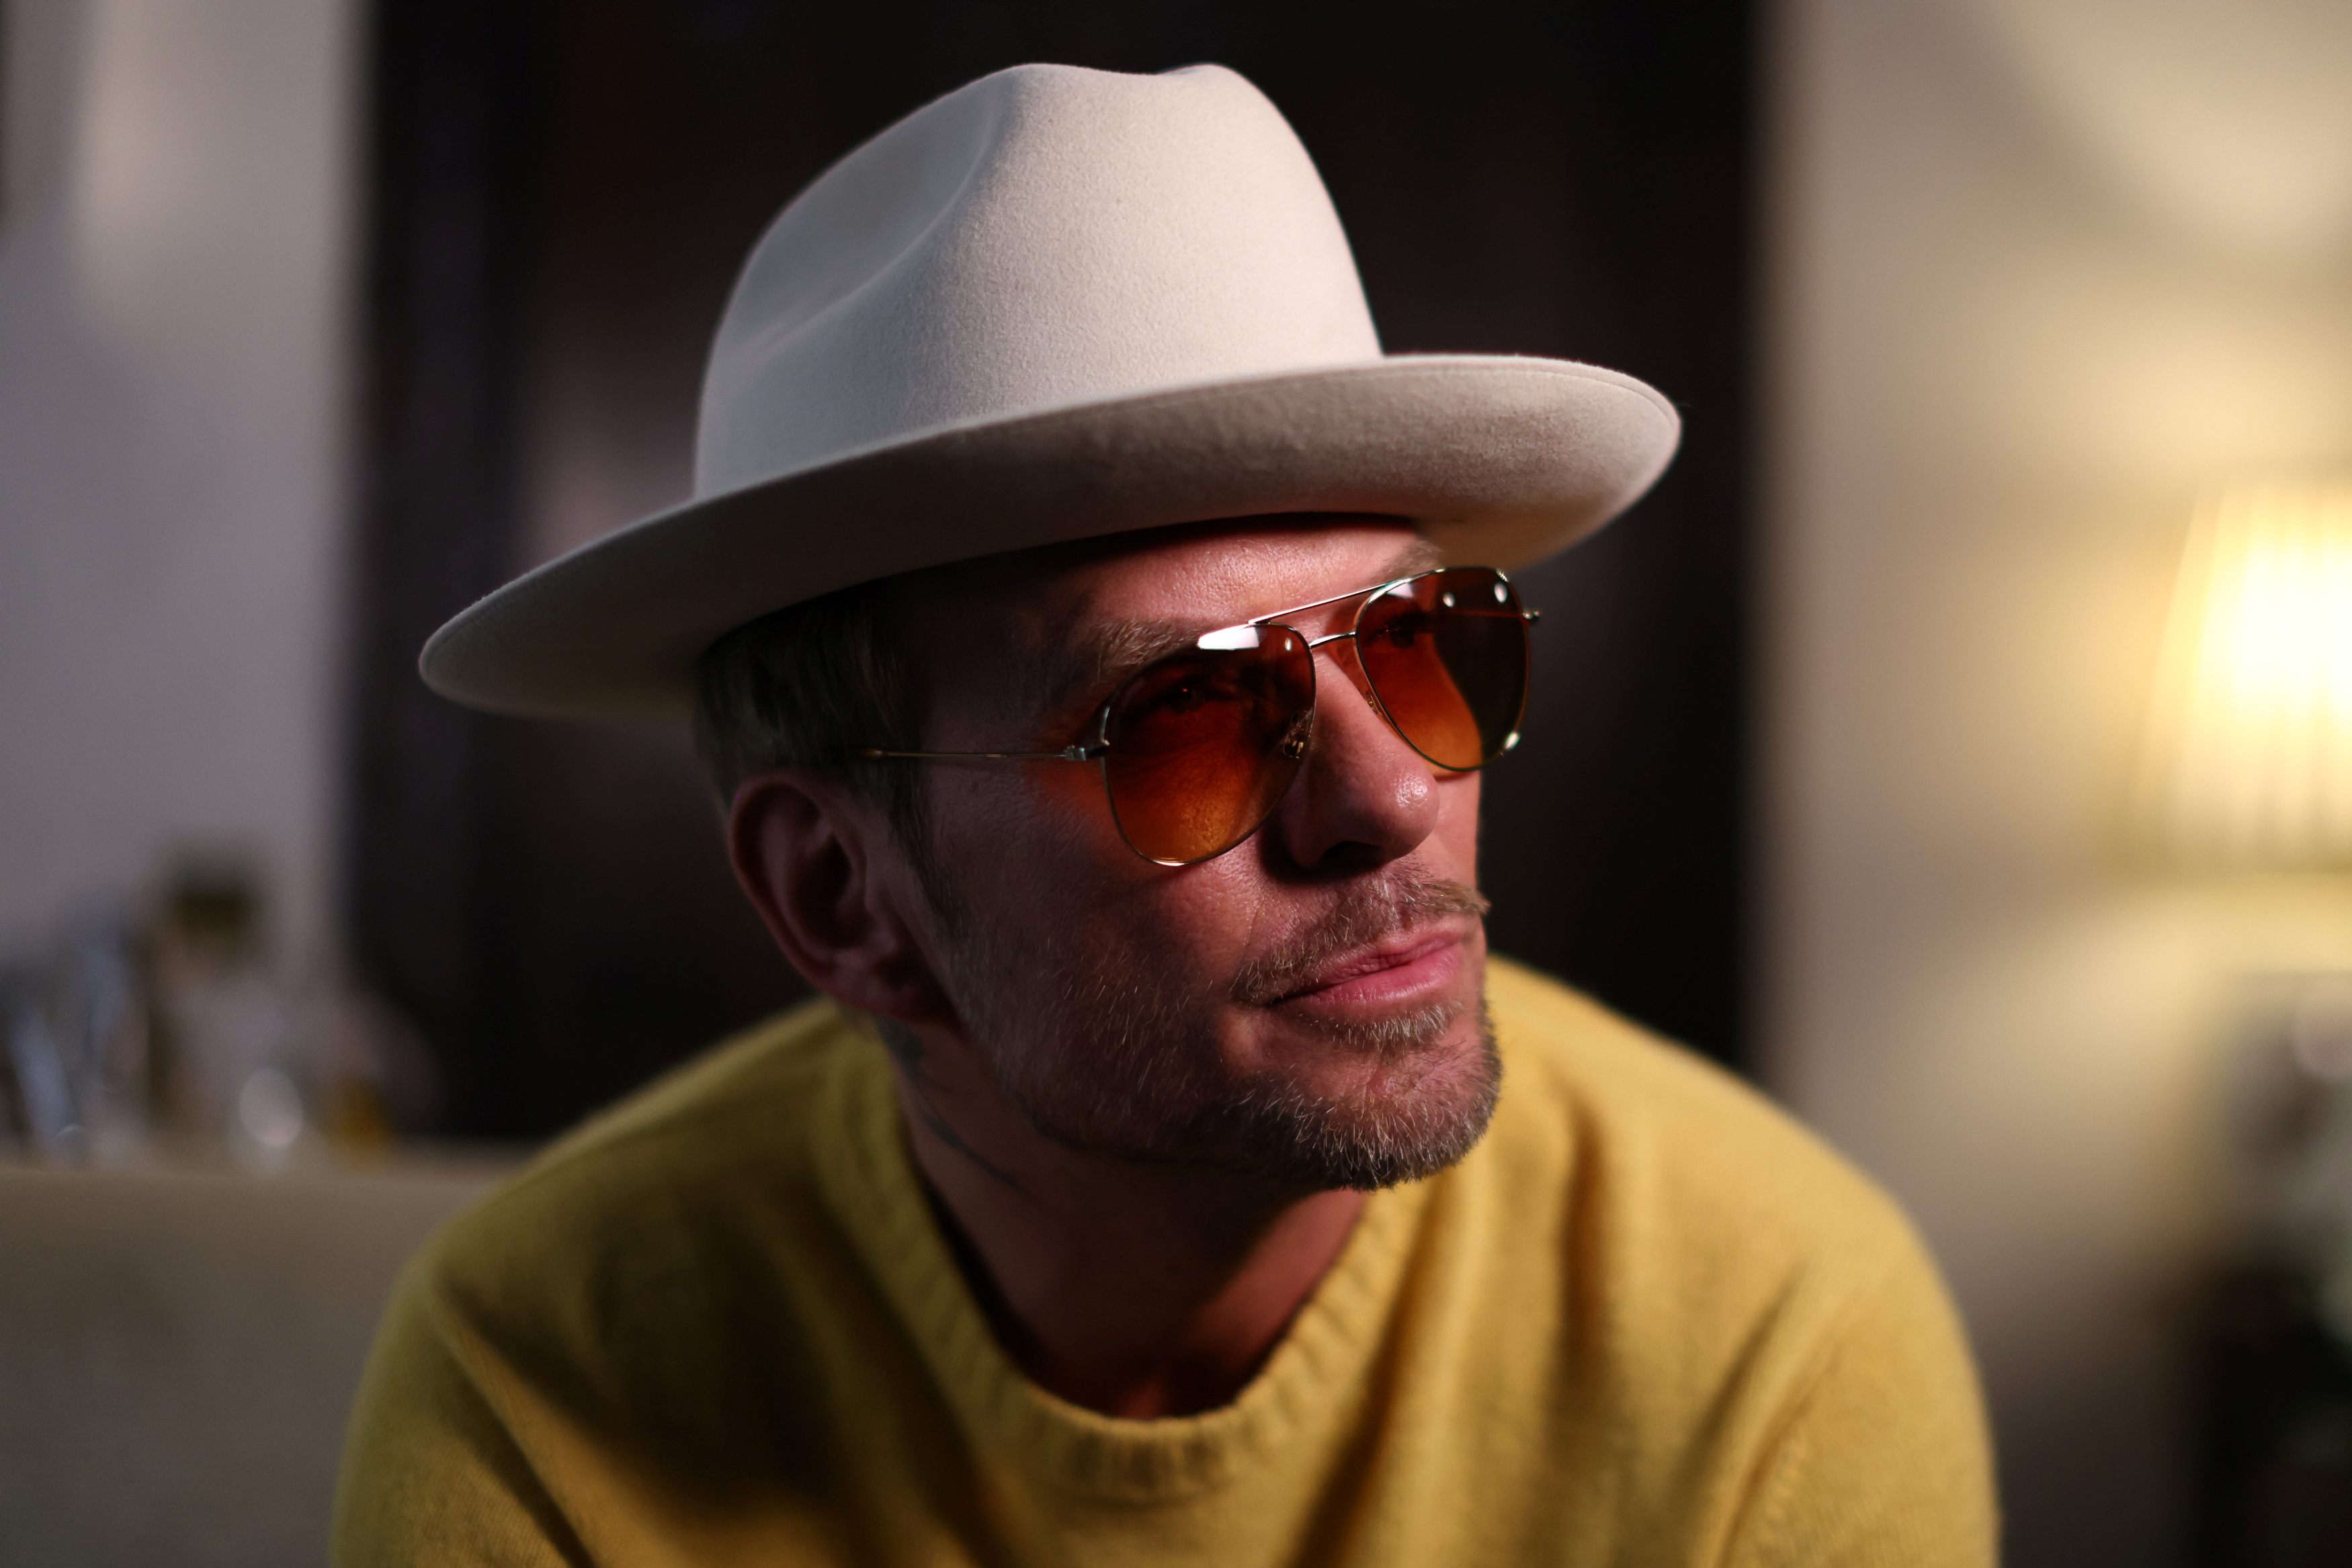 Matt Goss poses for a portrait after an interview at the Dorchester Hotel in London, Britain, October 5, 2021. Picture taken October 5, 2021. REUTERS/Tom Nicholson